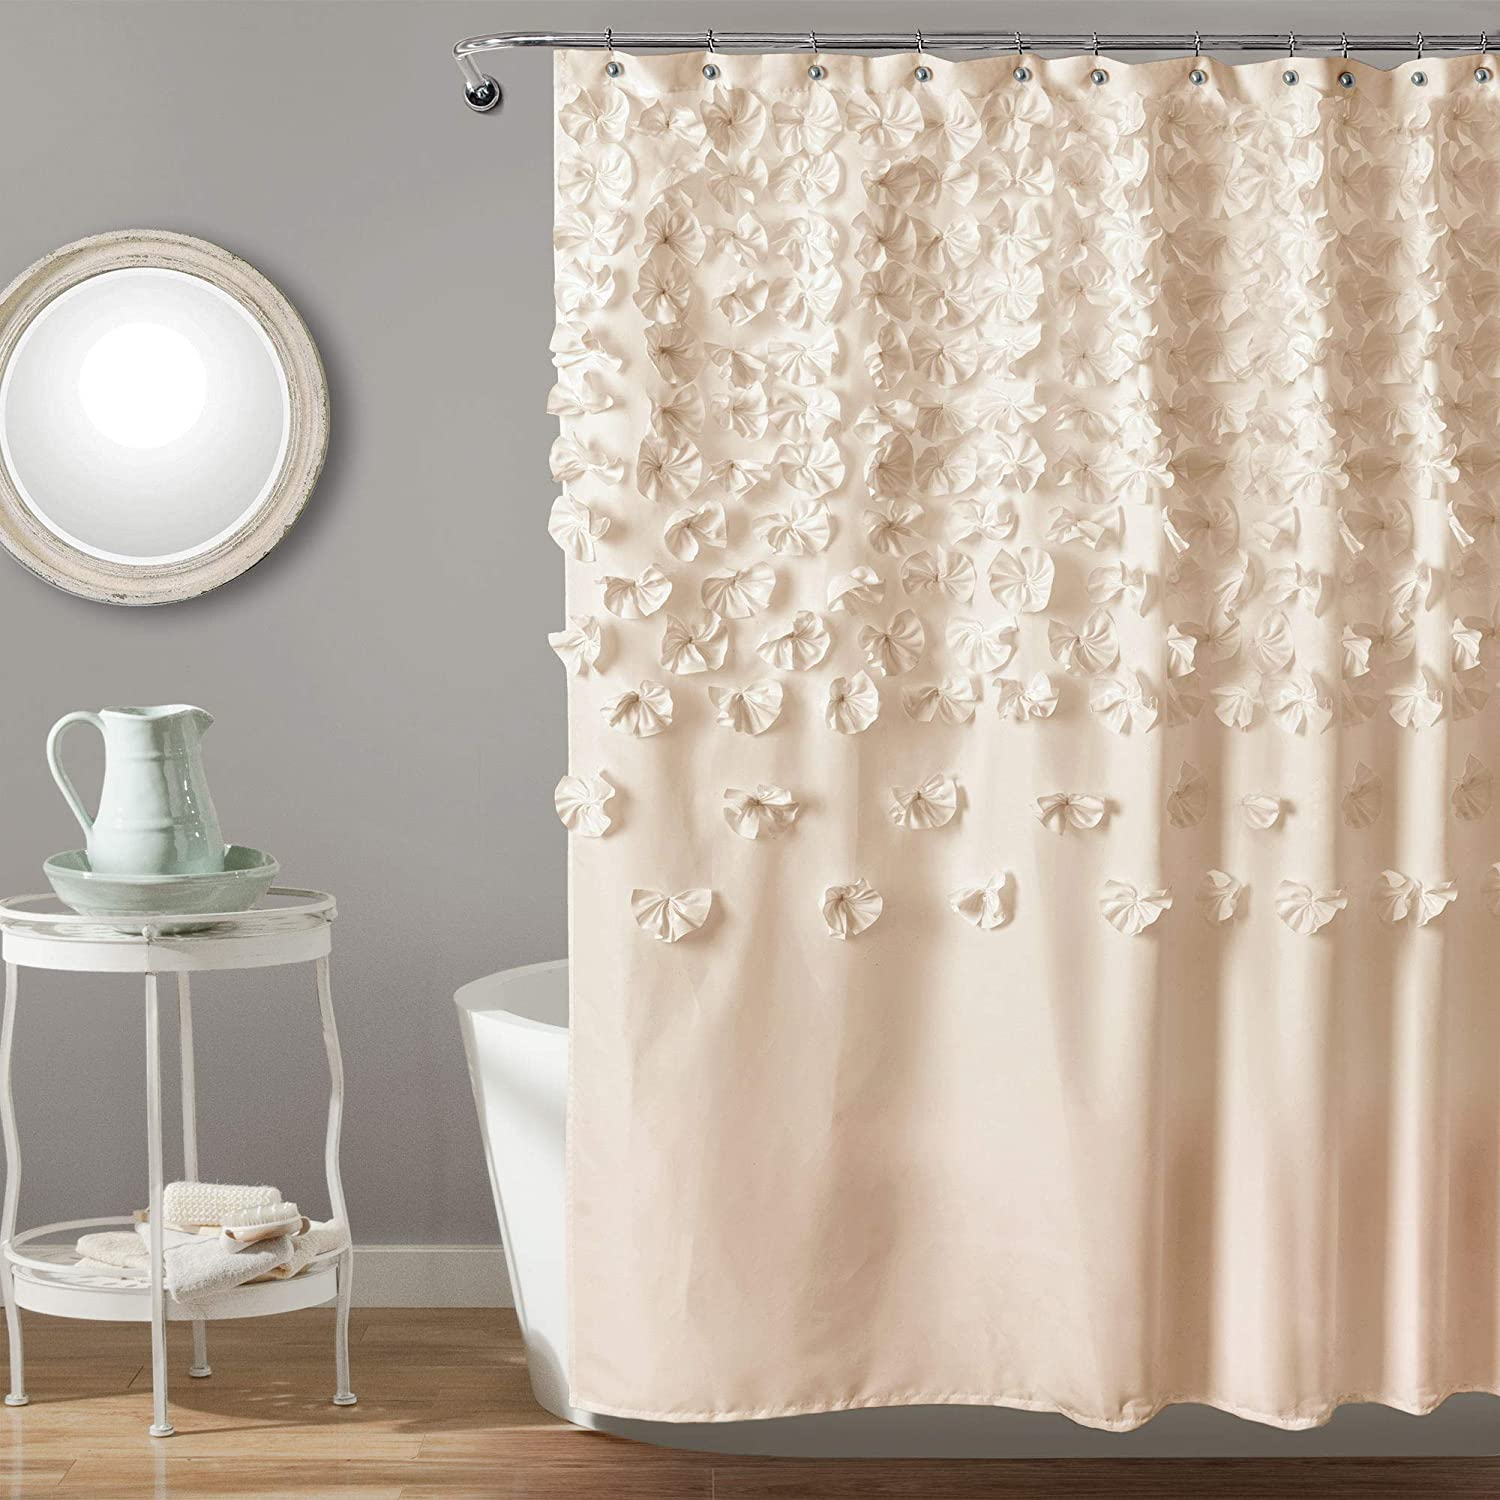 "Lush Decor Lucia Shower Curtain - Fabric, Ruched, Floral, Textured Shabby Chic, Farmhouse Style Design, 72"" x 72"", Ivory"